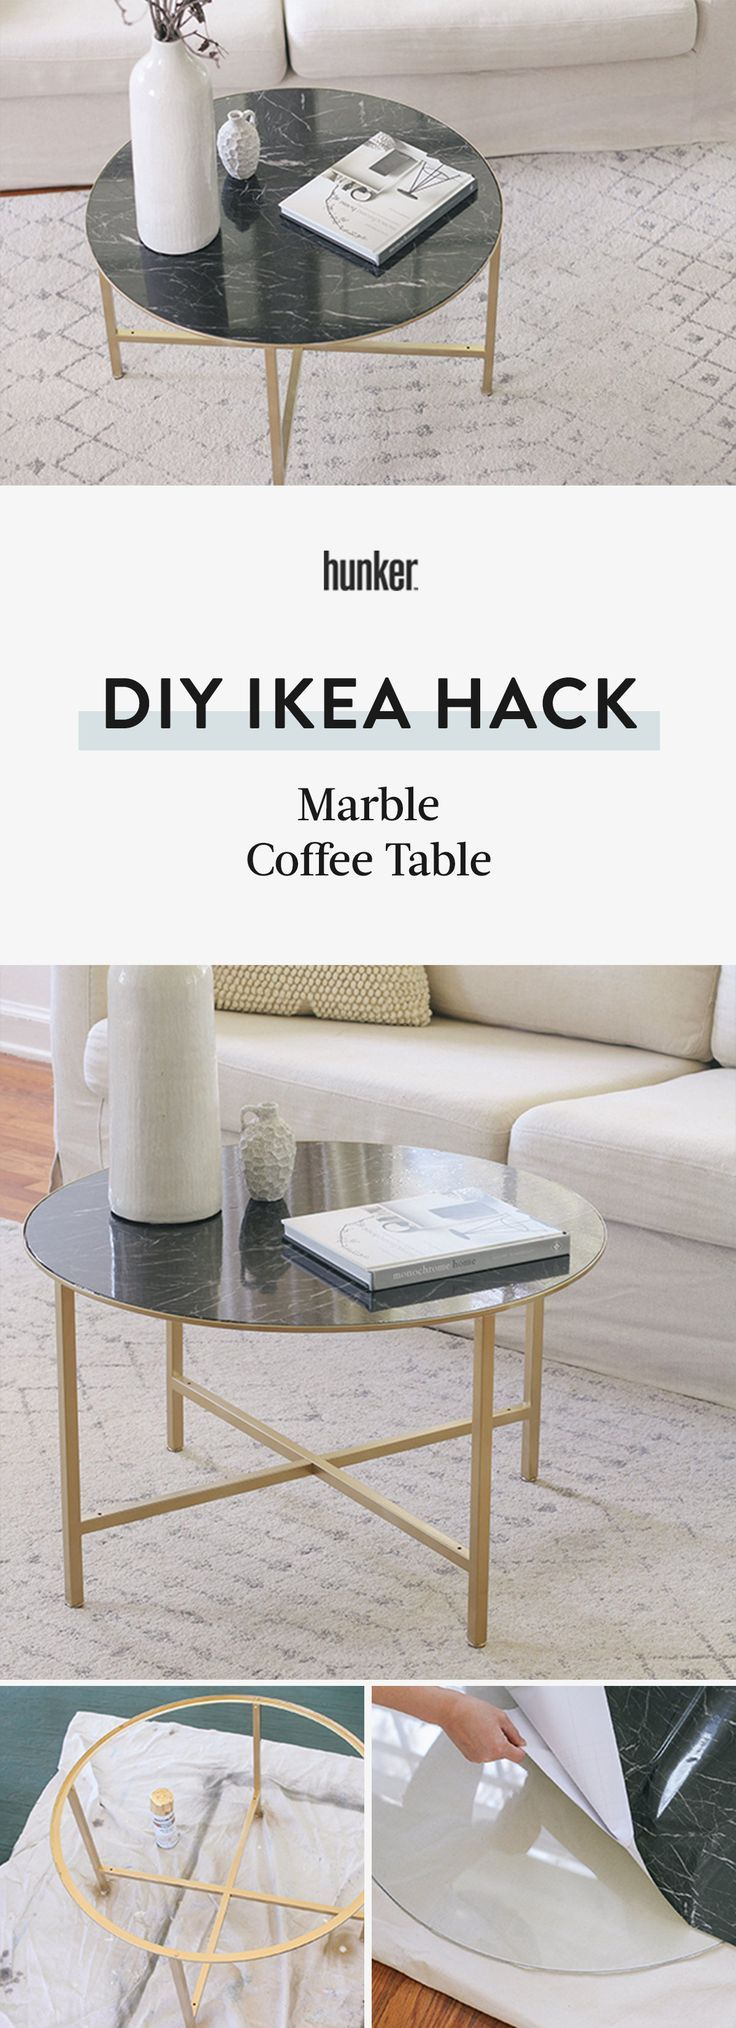 You Need A New Coffee Table And This Ikea Hack Delivers Caution Serious Chicness Ahead Hunker Coffee Table Ikea Diy Table Diy Marble Table [ 2028 x 736 Pixel ]